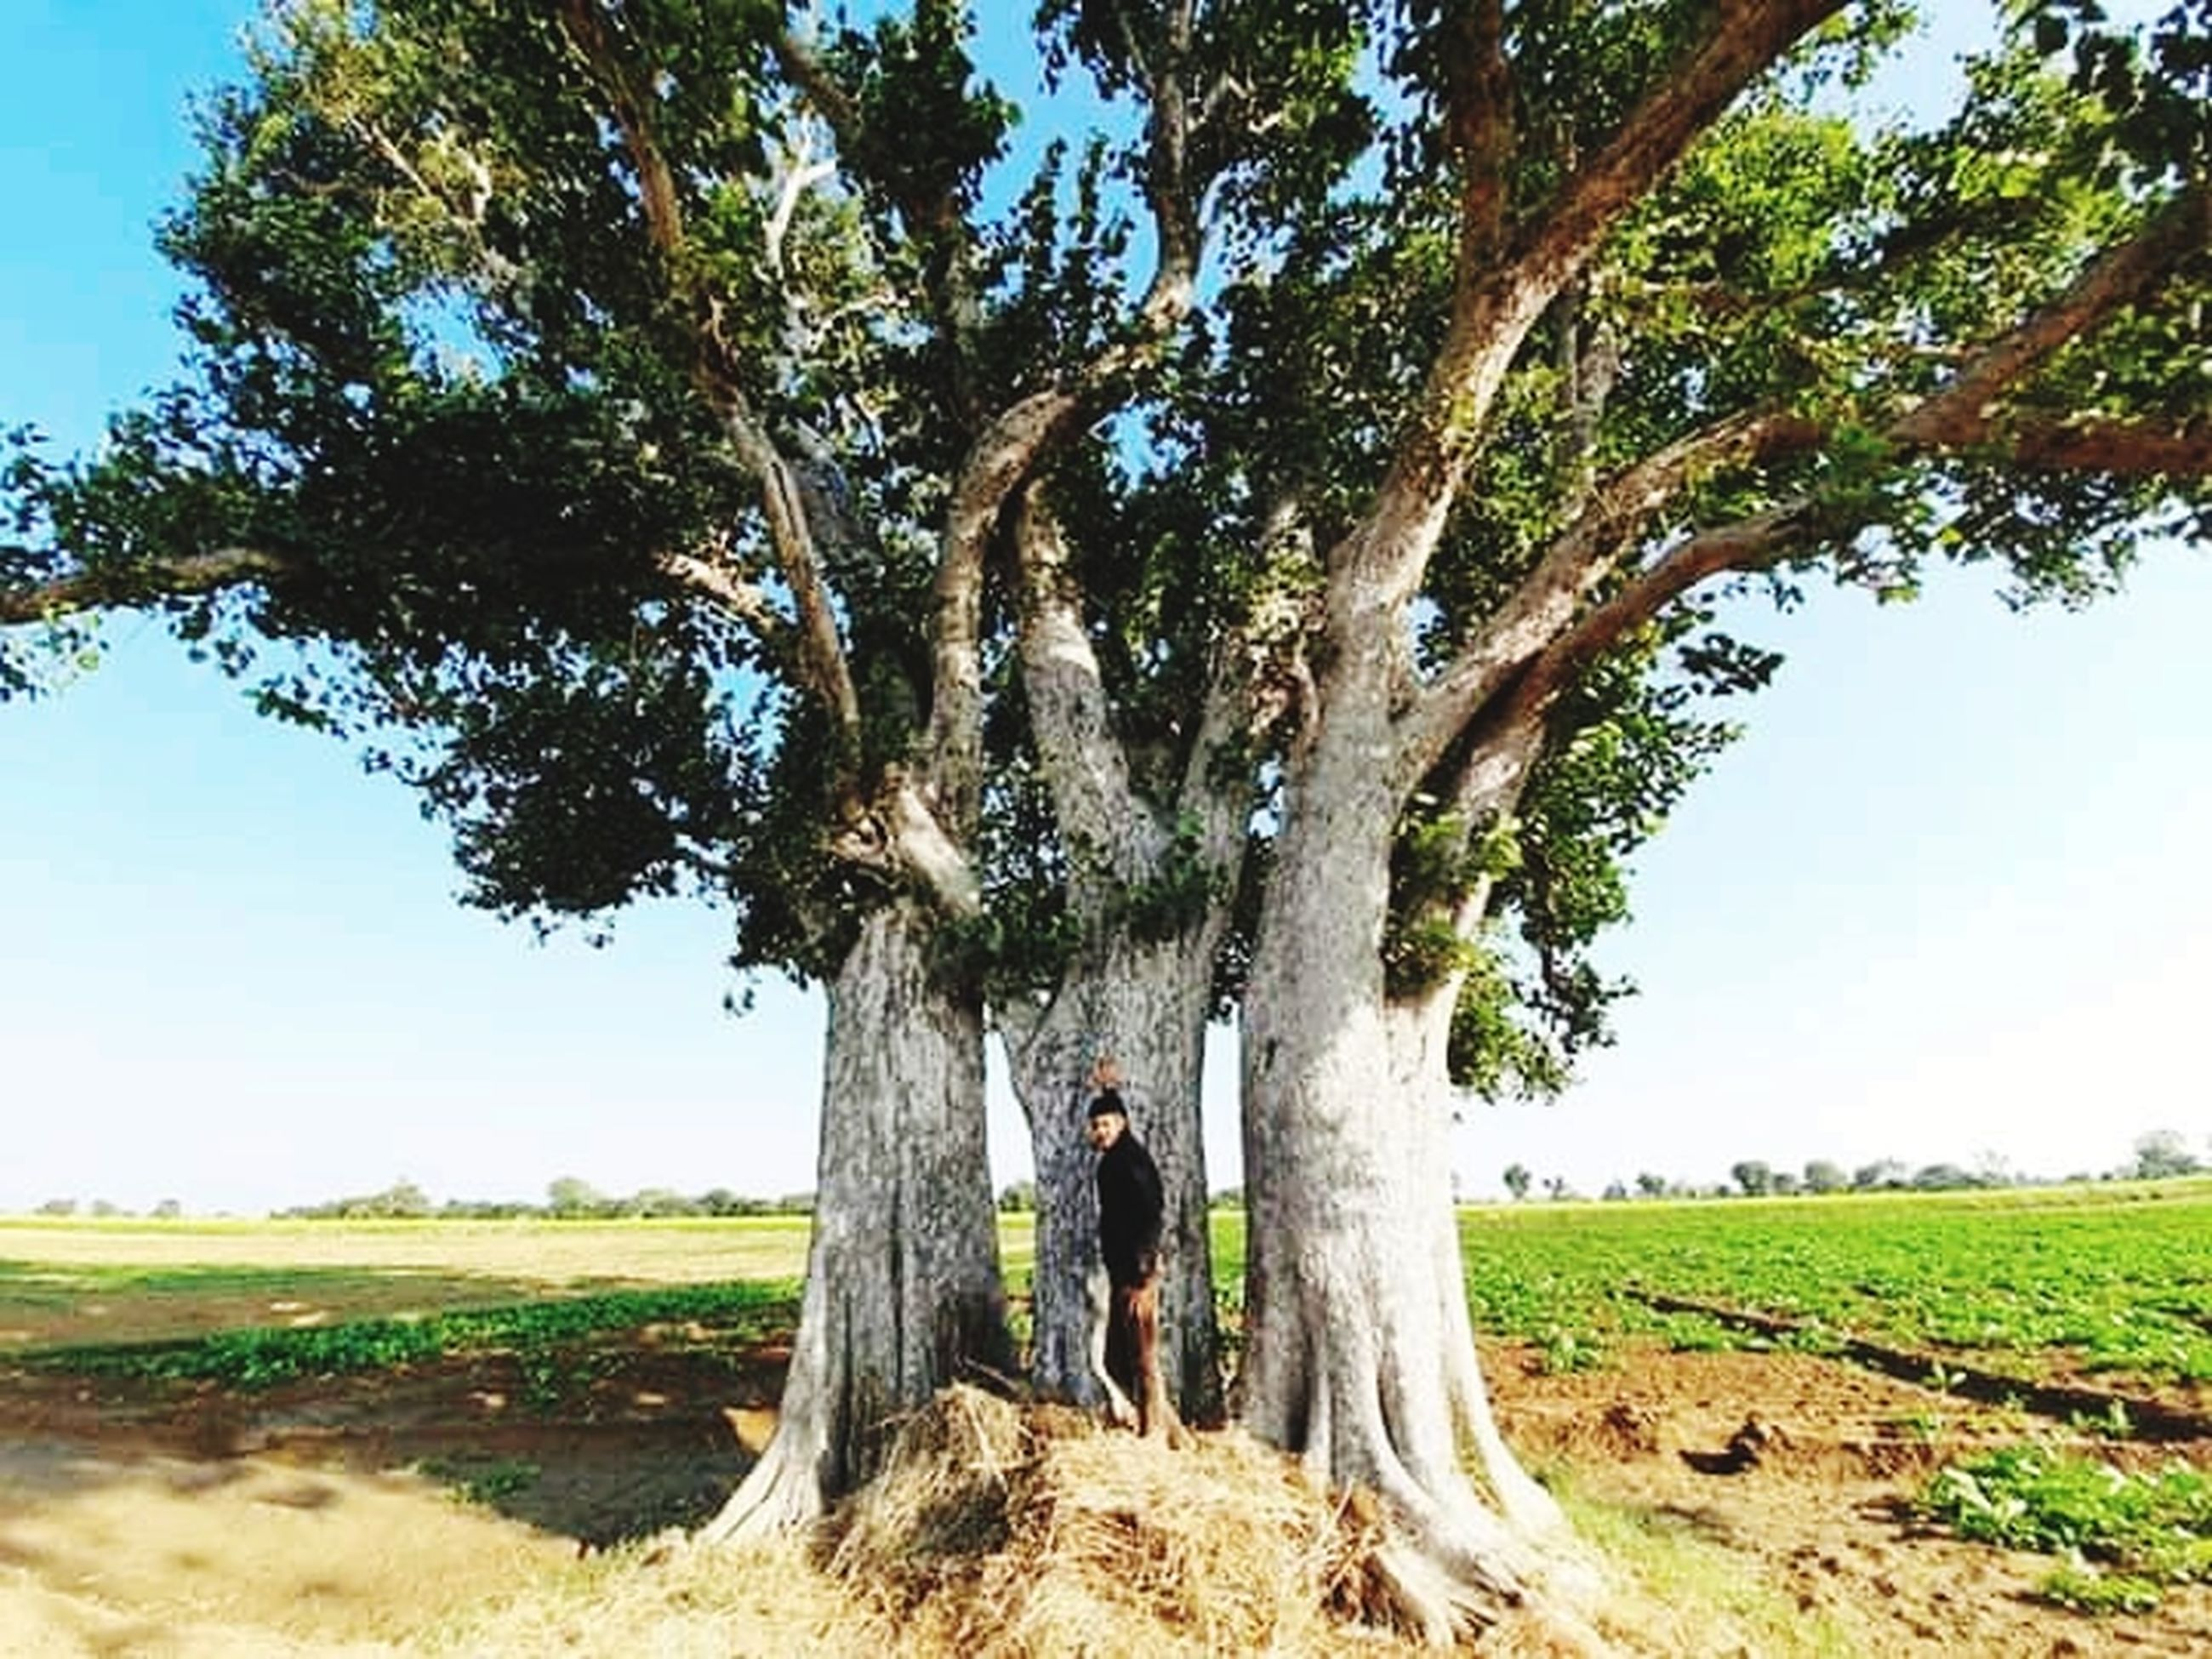 plant, tree, landscape, nature, environment, growth, sky, land, field, produce, rural scene, day, beauty in nature, tree trunk, trunk, tranquility, sunlight, scenics - nature, outdoors, green, agriculture, plantation, soil, tranquil scene, no people, food and drink, rural area, non-urban scene, grass